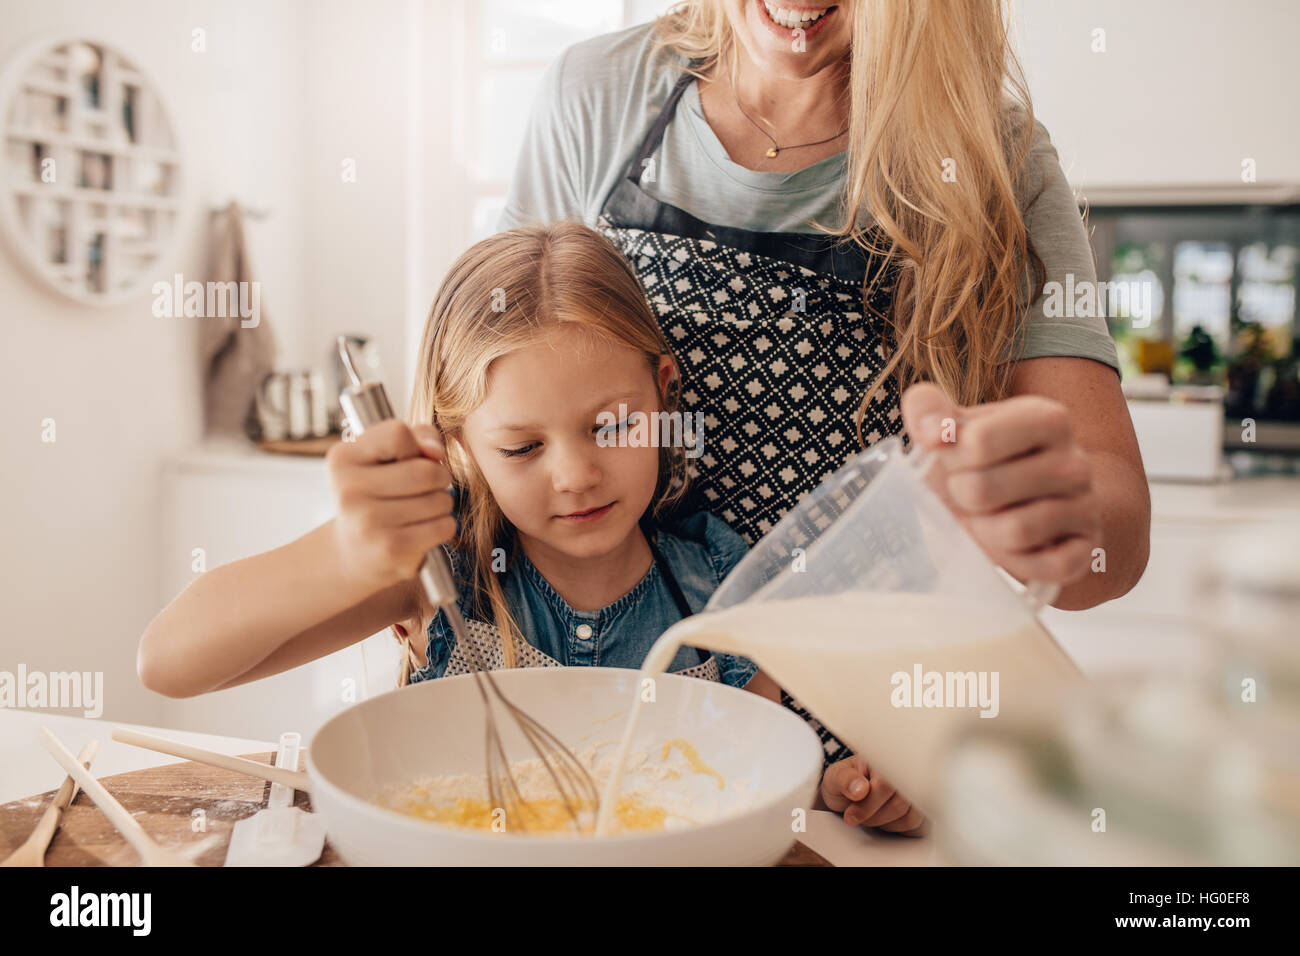 Cute little girl and her mother mixing batter in the bowl. Mother pouring milk with daughter whisking the batter. - Stock Image